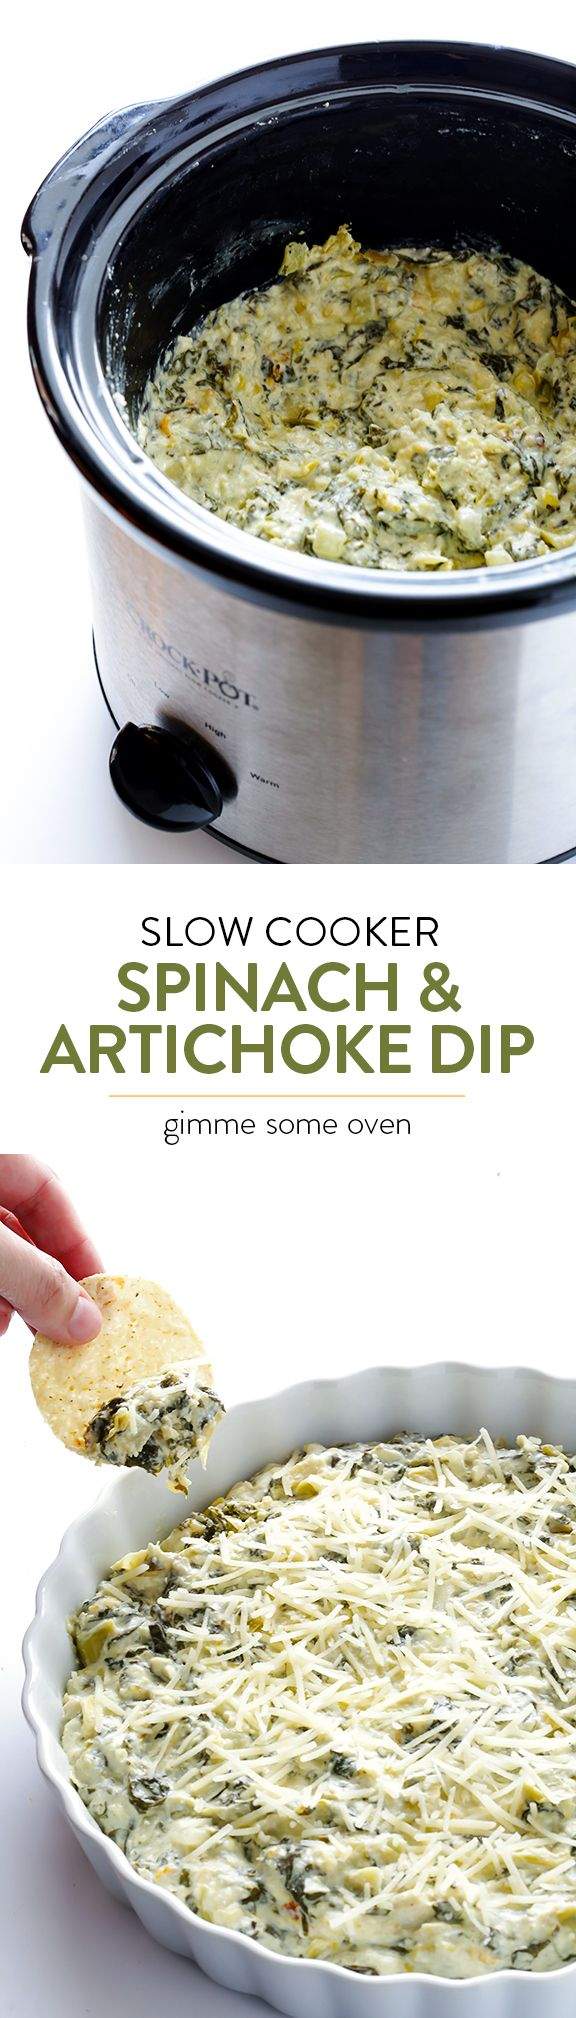 Slow Cooker Spinach Artichoke Dip | Gimme Some Oven